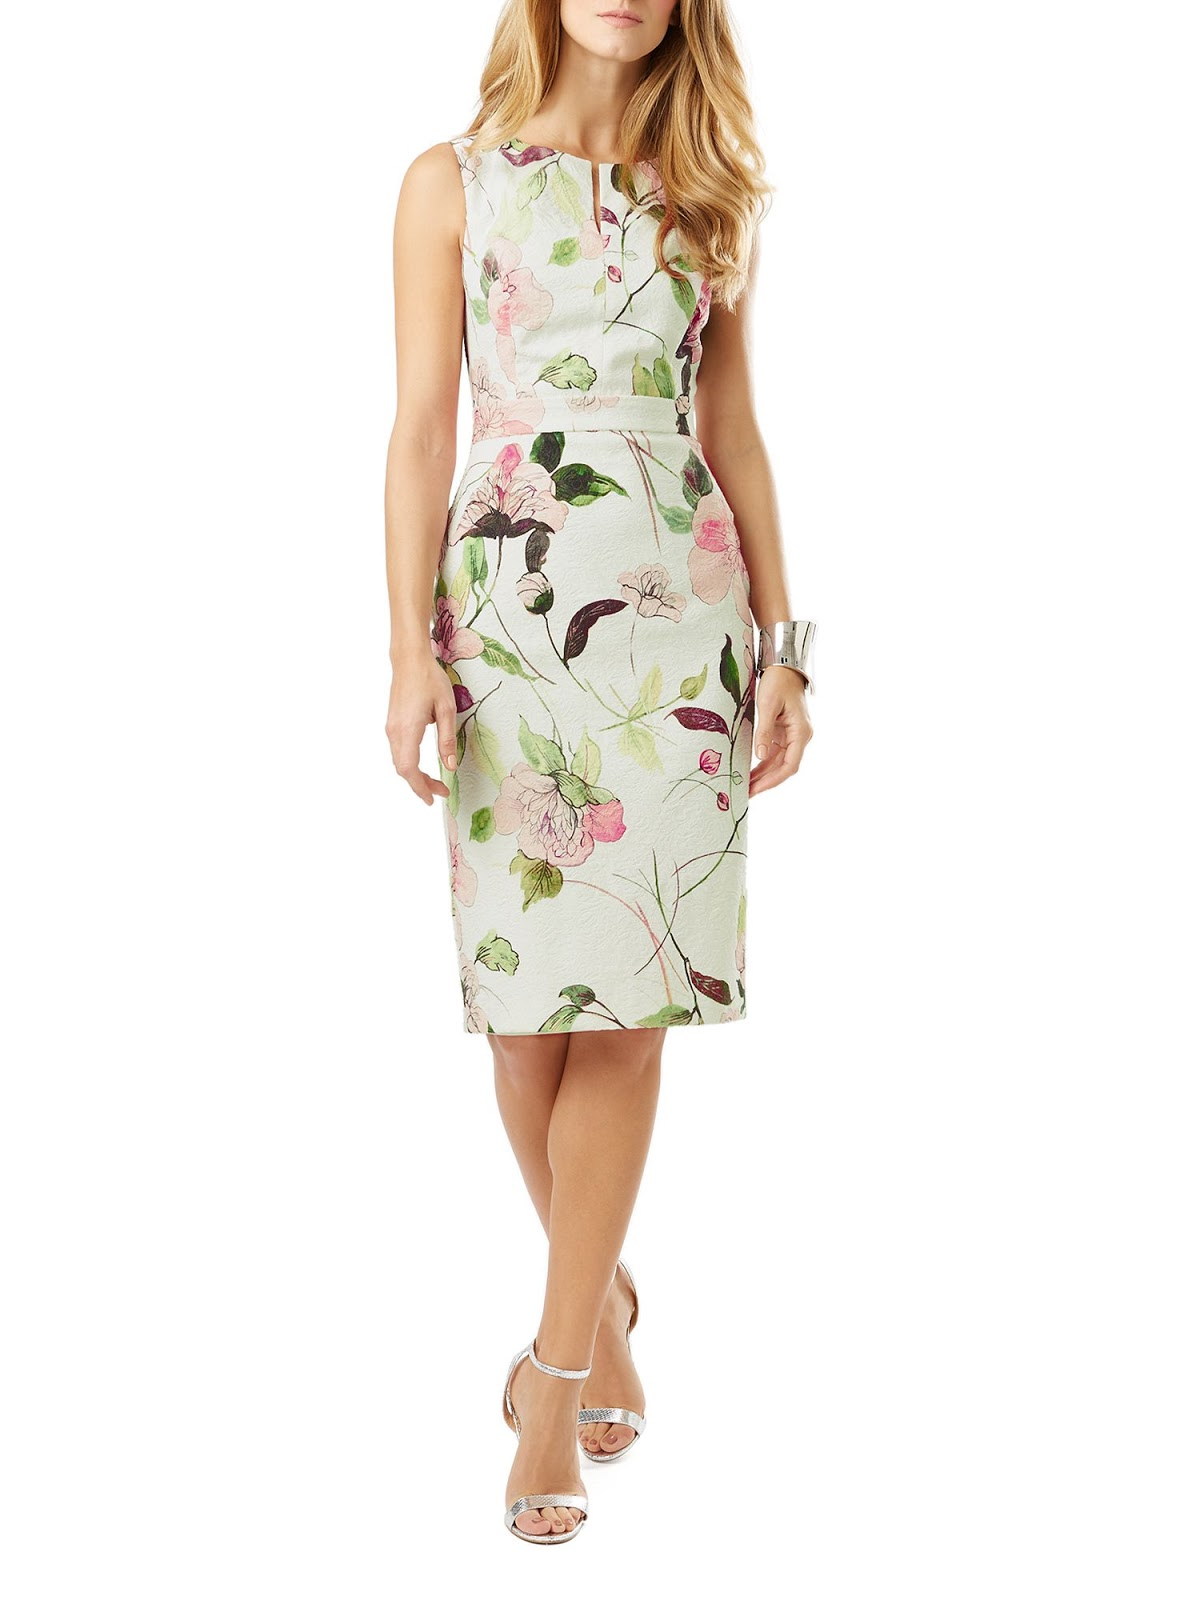 Three lovely spring floral print dresses